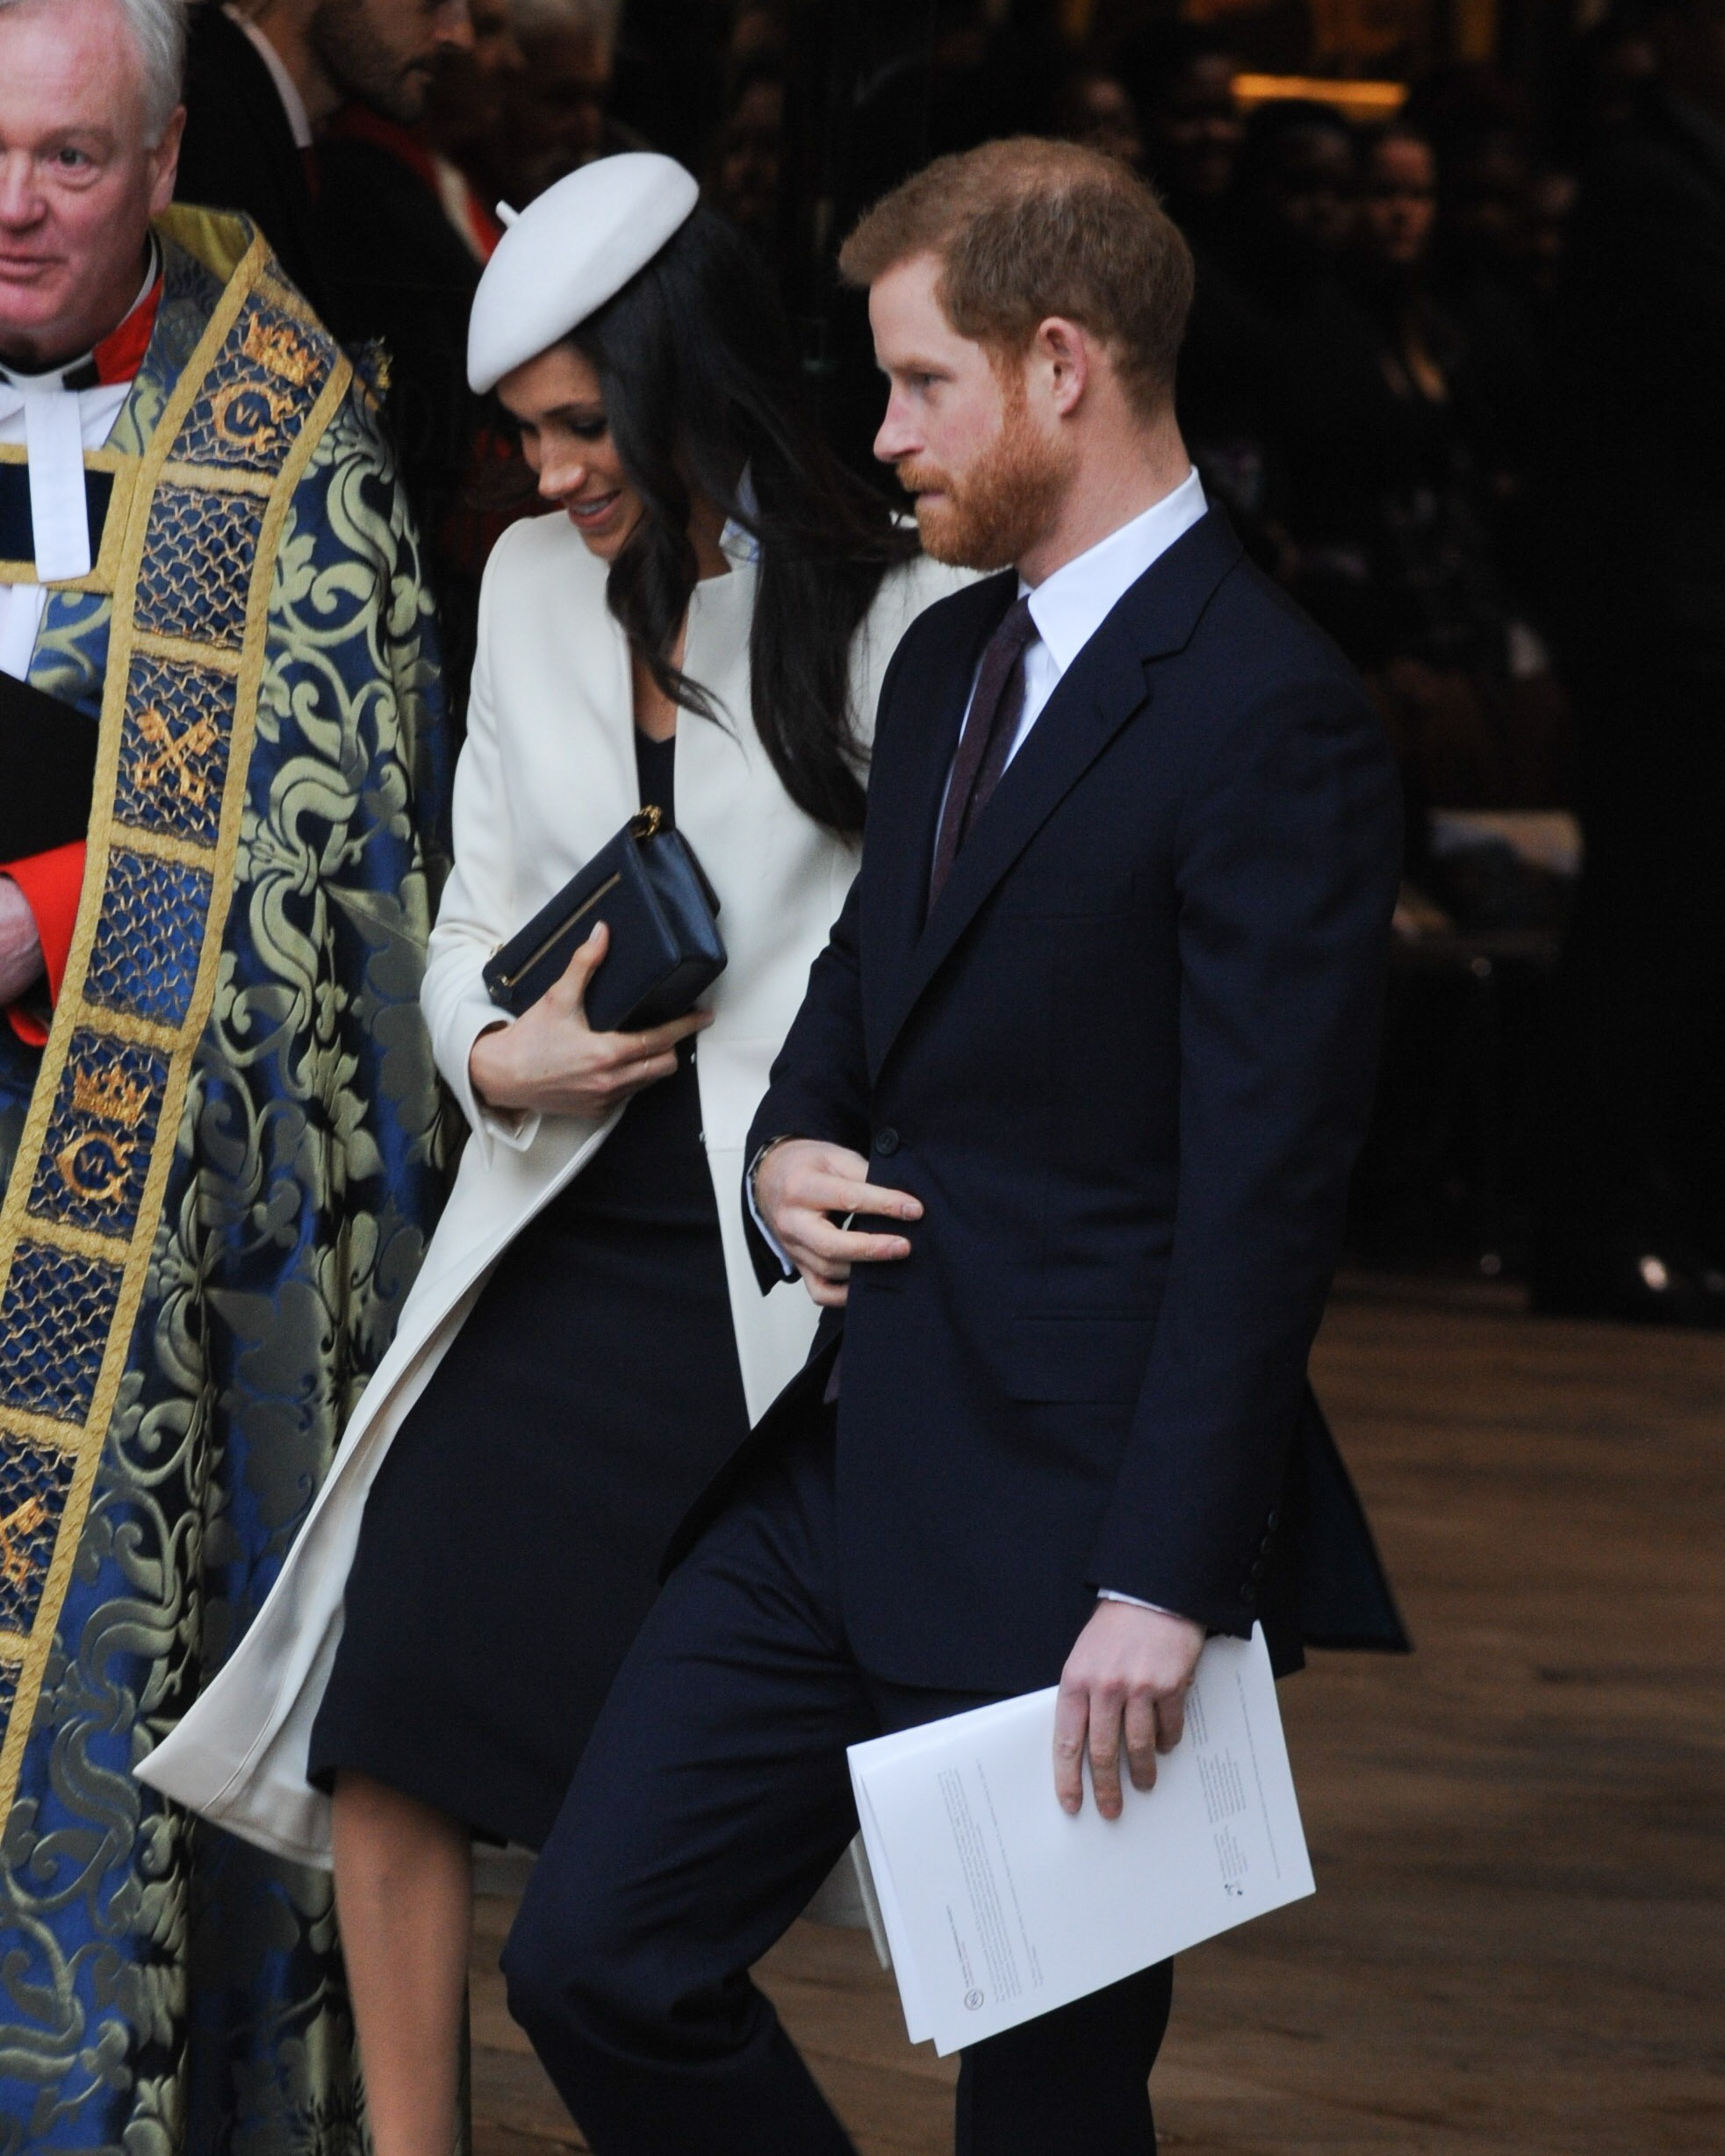 Meghan Markle and Prince Harry will marry on May 19 at St. George's Chapel at Windsor Castle